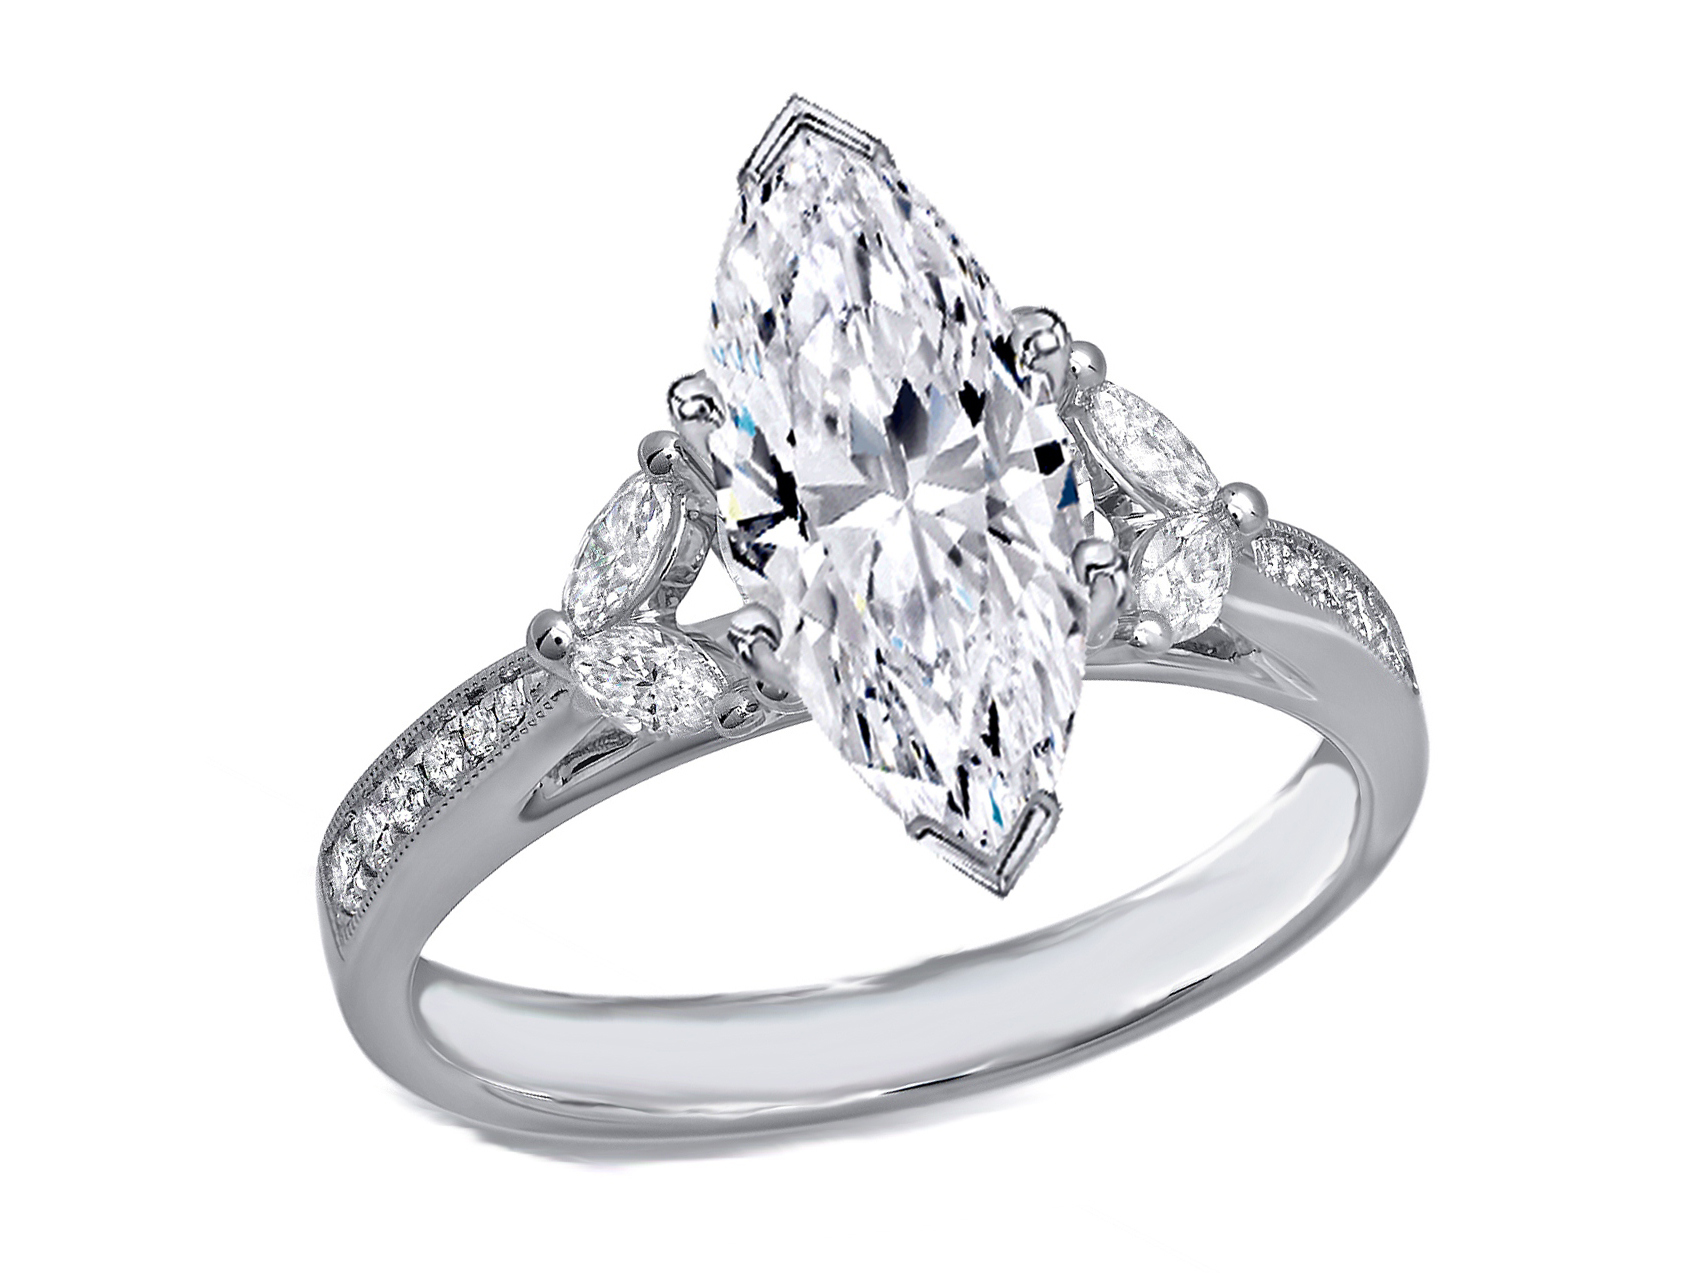 cathedral gold engagement oval diamond edge rings cut white and in ring setting shank squared solitaire with